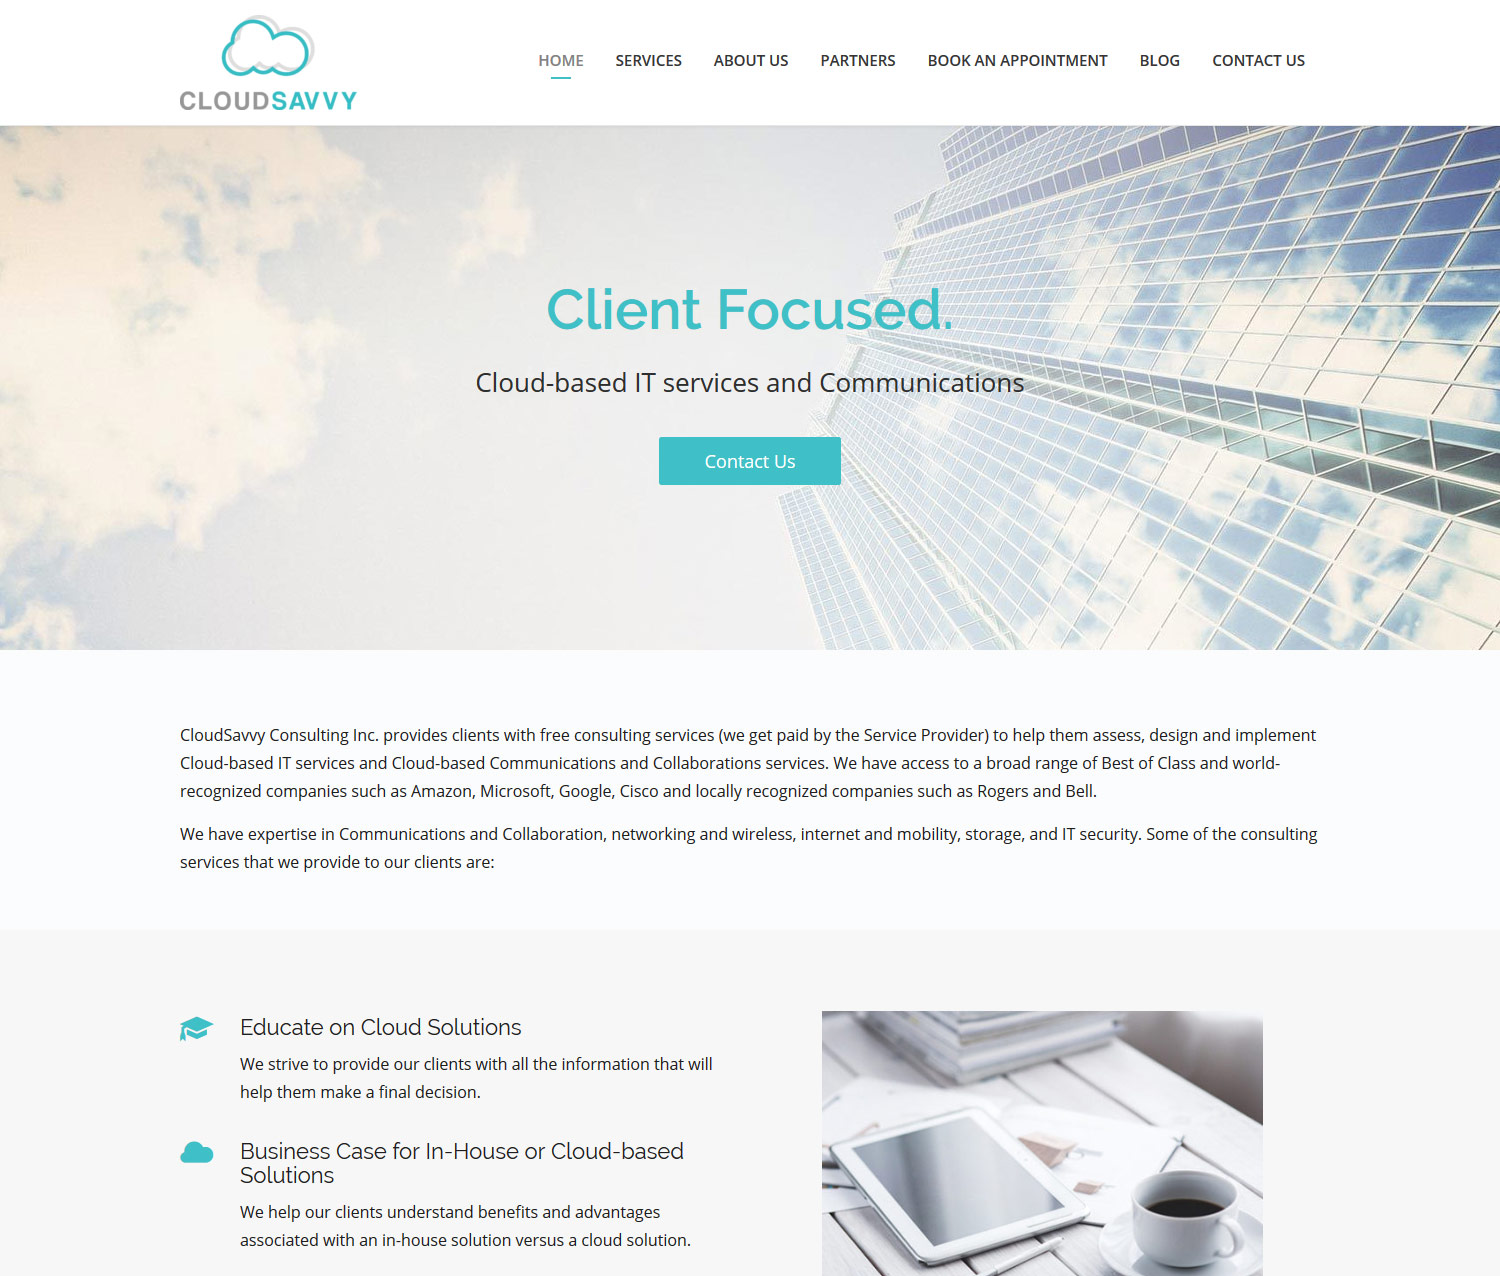 cloudsavvy consulting services eggsmedia